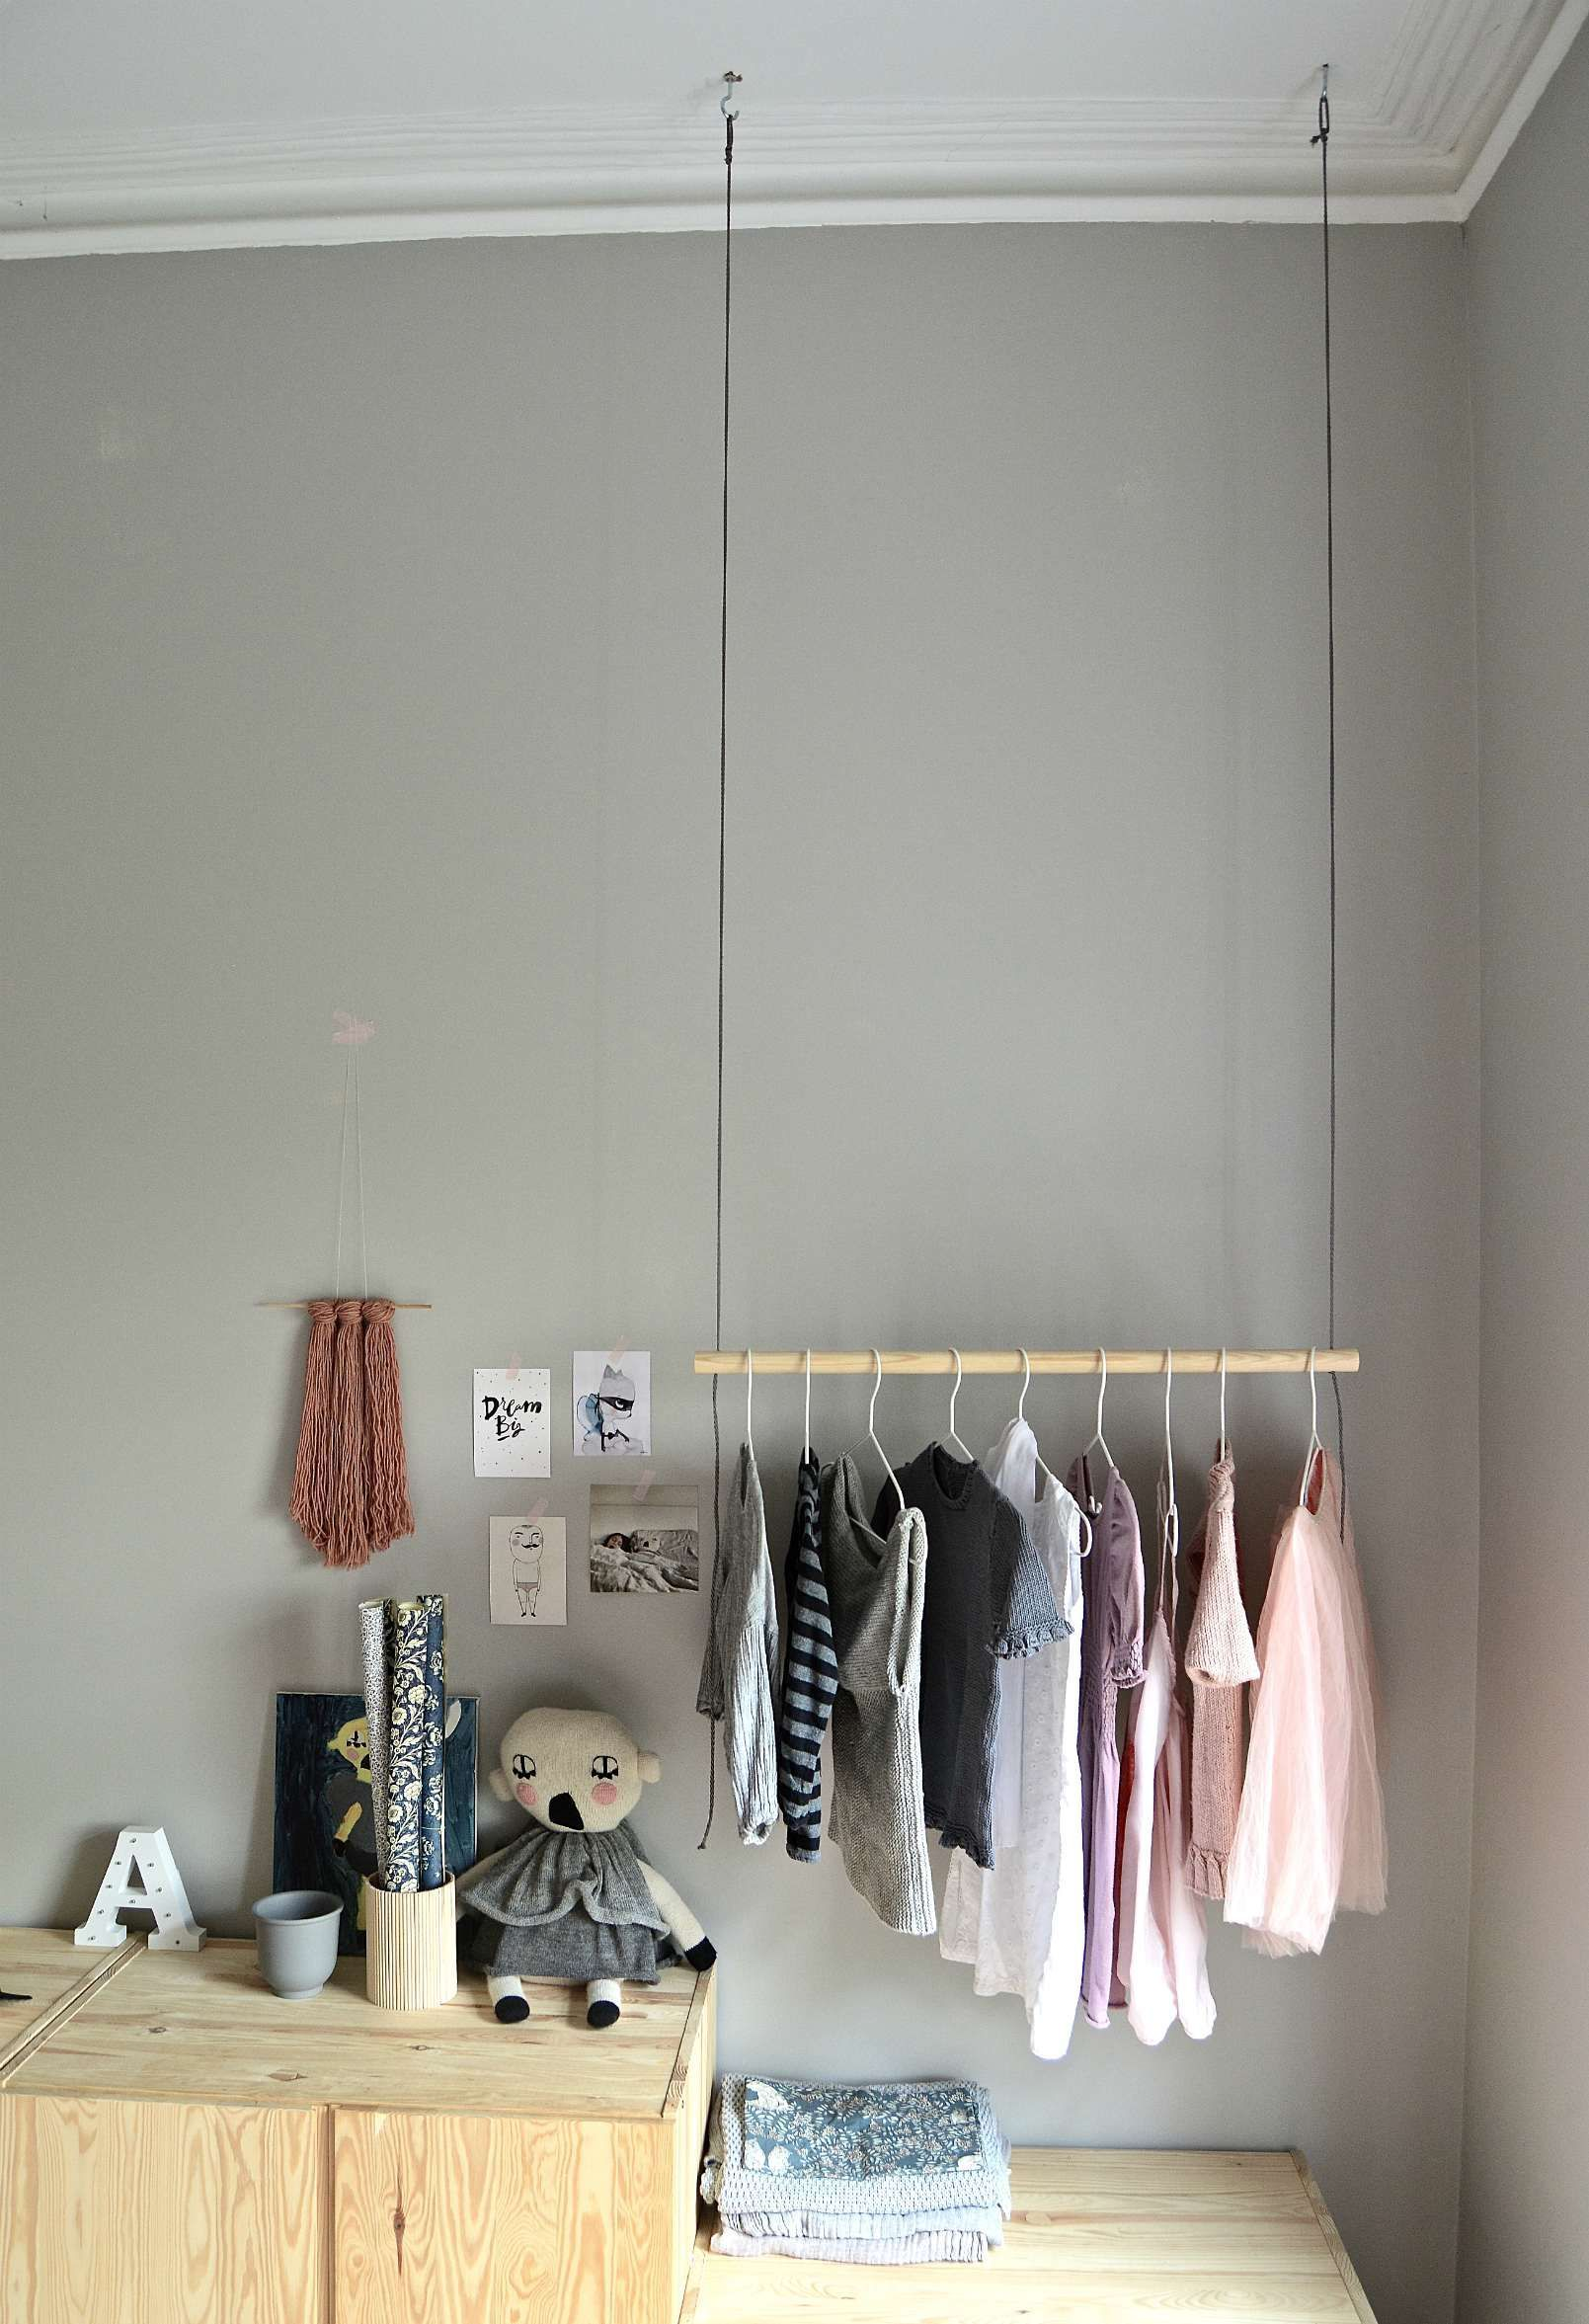 Hang On With This Diy Hanging Clothes Rack Diy Home Decor Your Diy Family In 2020 Hanging Clothes Racks Clothes Rack Design Diy Clothes Rack